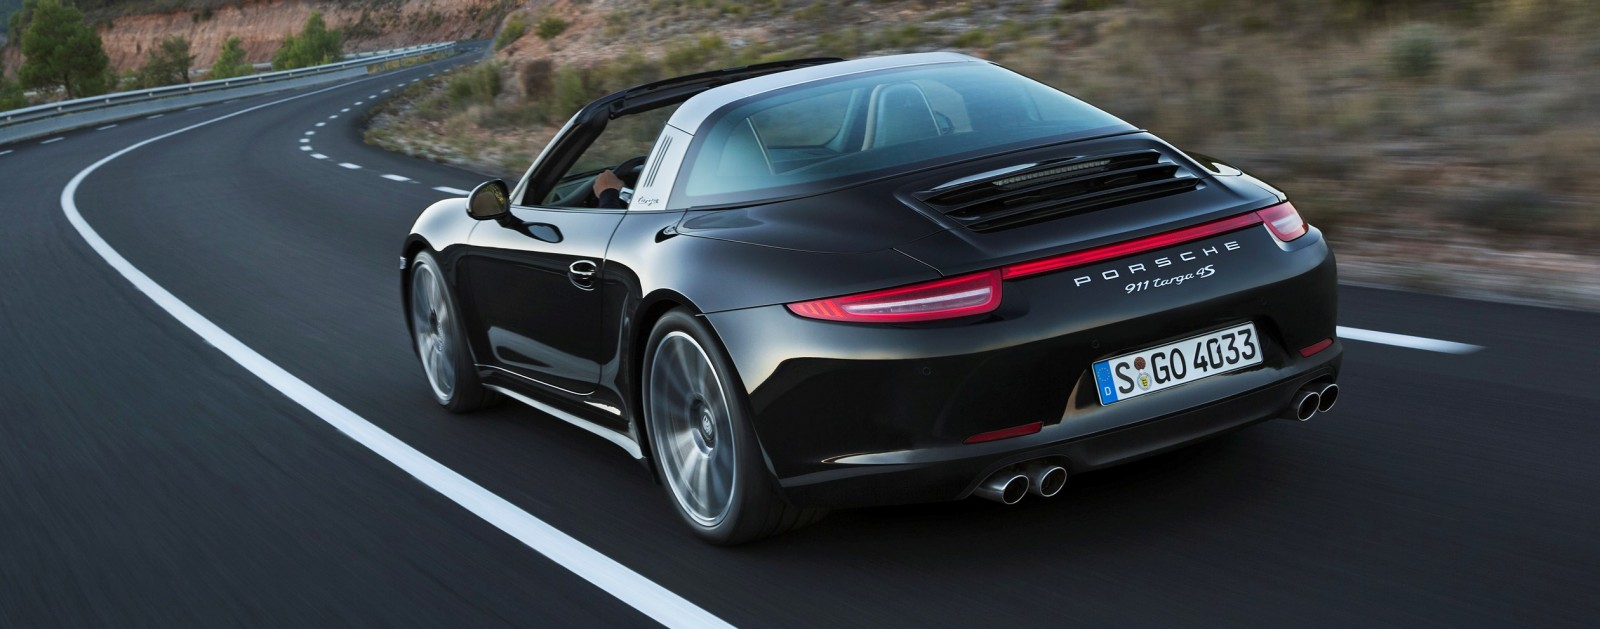 2014 Porsche 911 Targa4 and Targa4S - Roof Animations of 400HP Surf 'n Turf Supercar 6